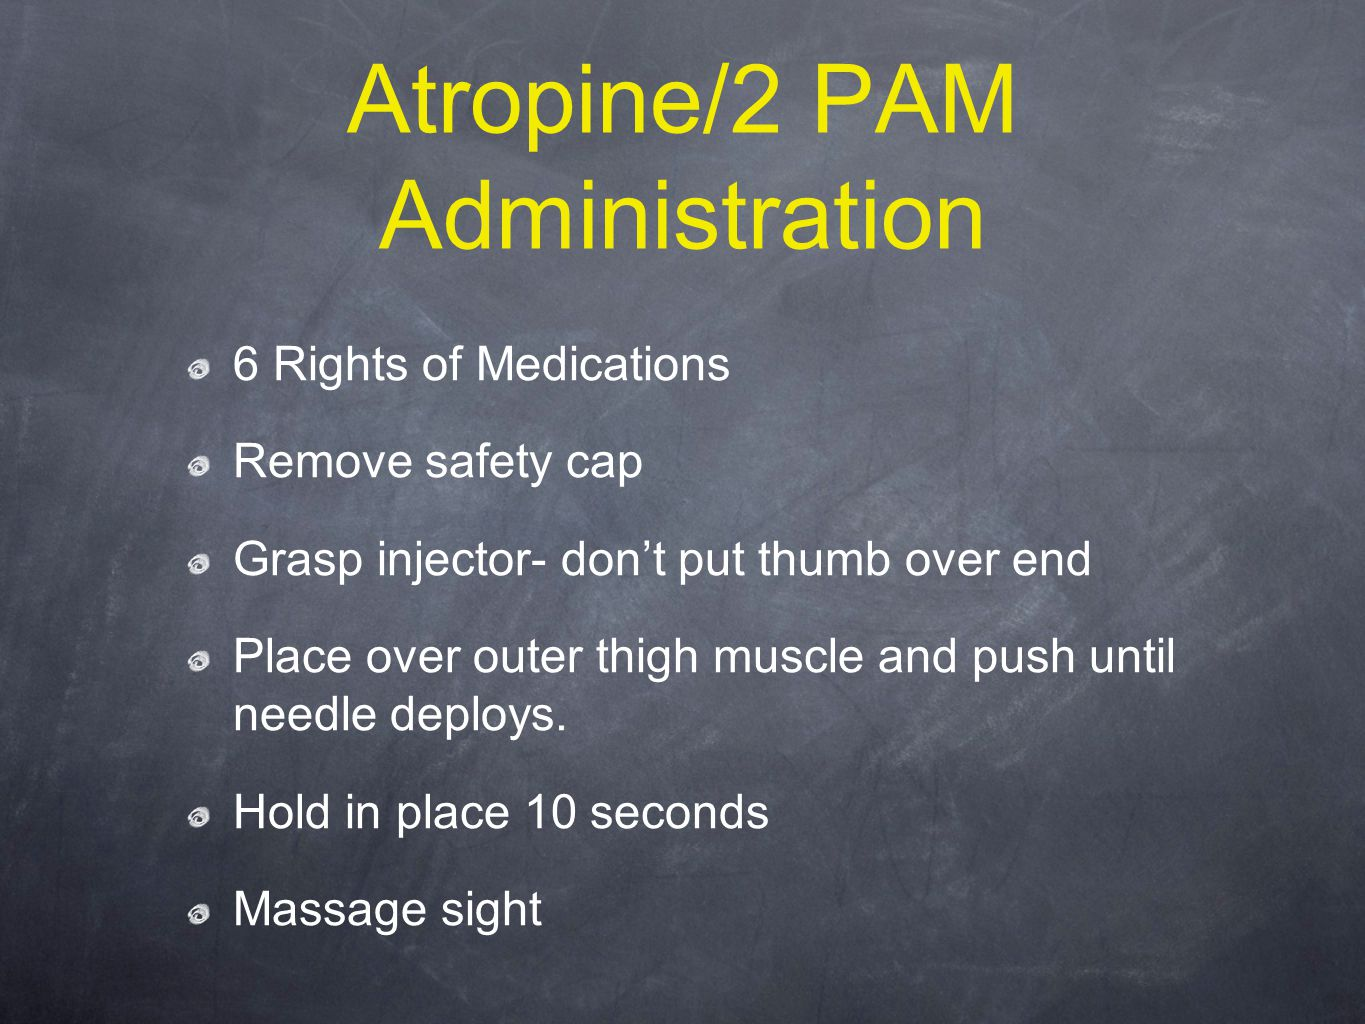 Atropine/2 PAM Administration 6 Rights of Medications Remove safety cap Grasp injector- don't put thumb over end Place over outer thigh muscle and push until needle deploys.